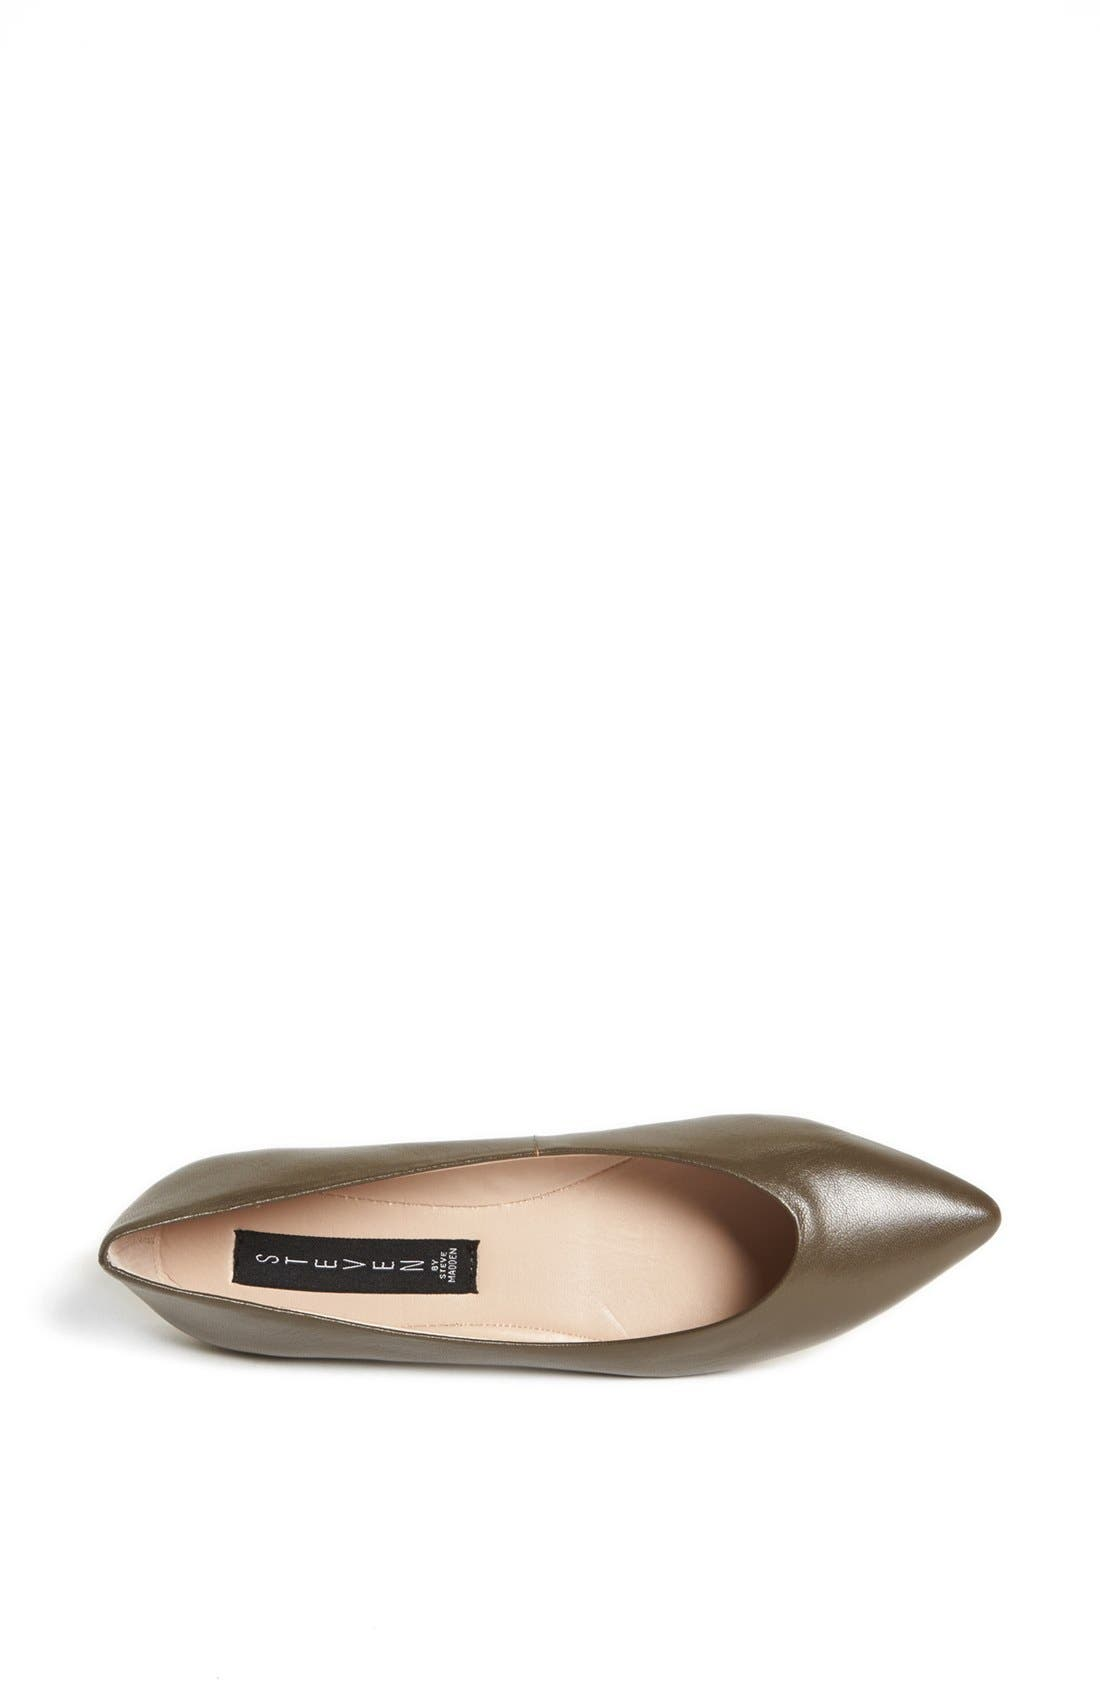 Alternate Image 3  - Steven by Steve Madden 'Elatedd' Pointed Toe Flat